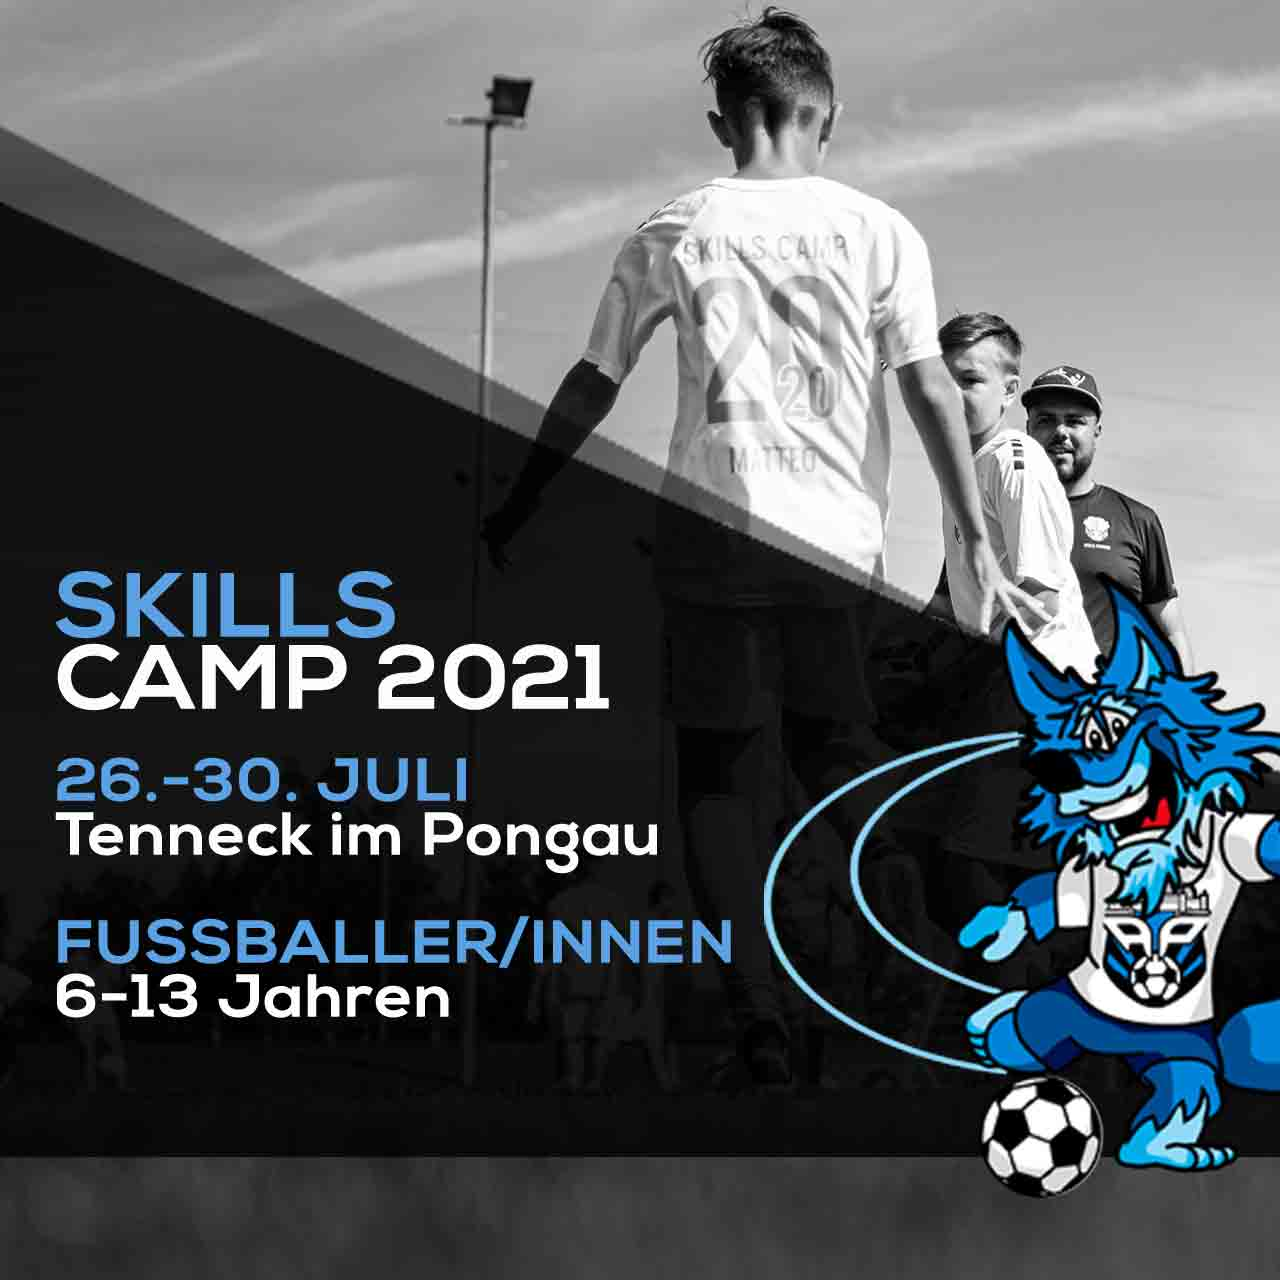 ap skills camp 2021 tenneck